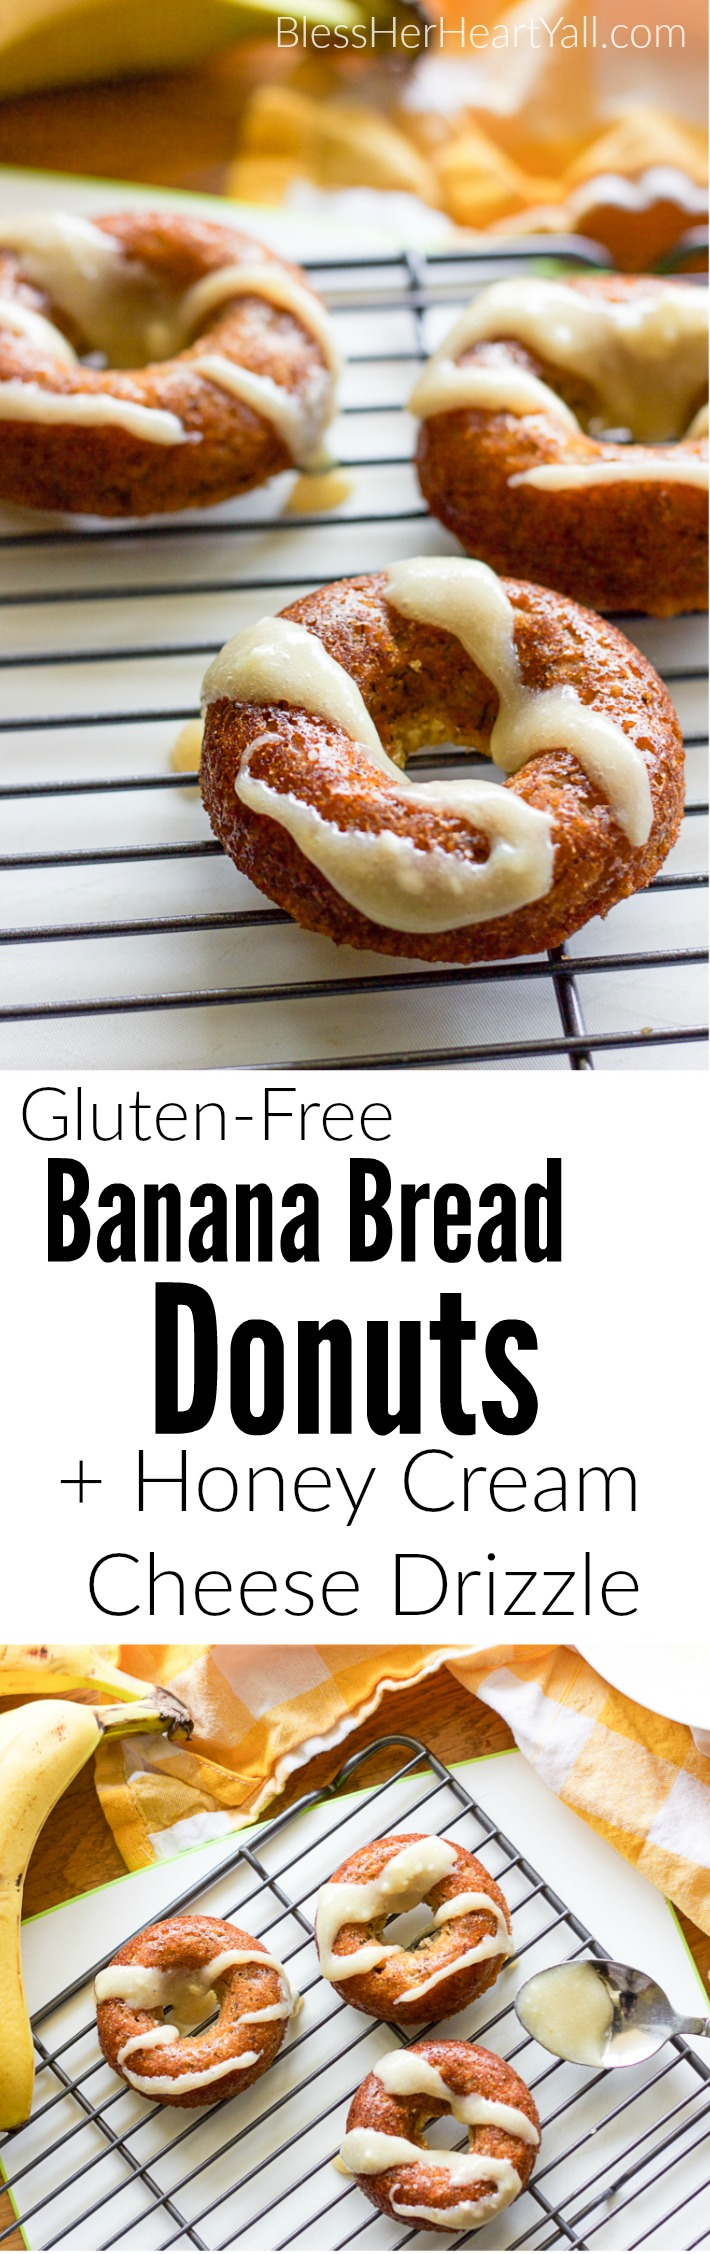 These gluten-free banana bread donuts are a great reason to wake up in the morning! Soft and moist banana bread is baked into fluffy donuts and then drizzled with an easy and quick honey cream cheese drizzle.